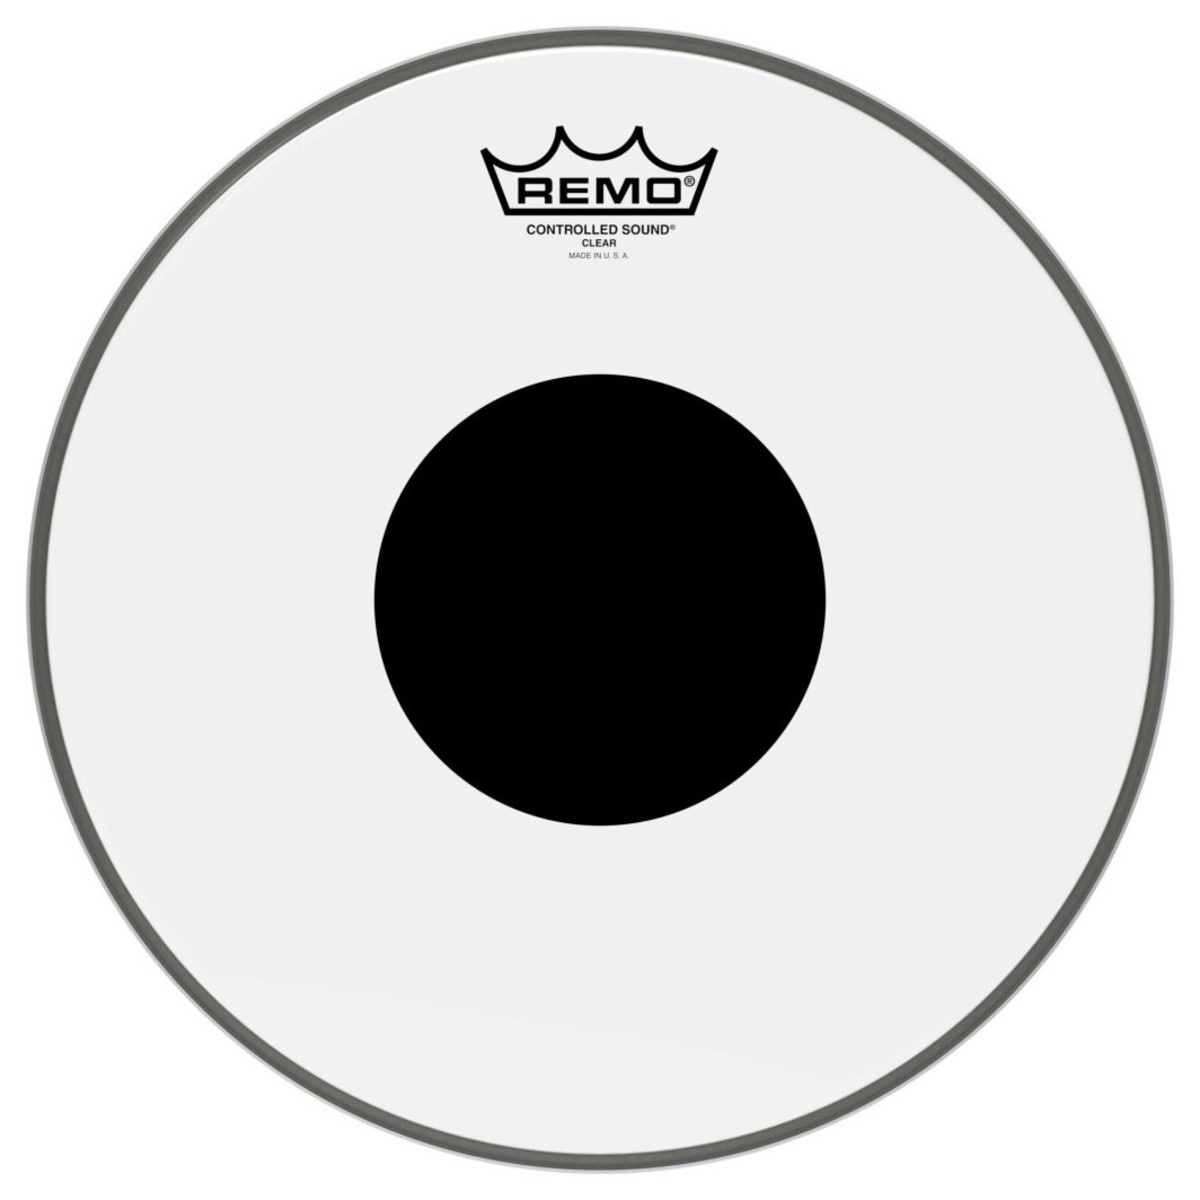 Remo Controlled Sound Clear 16 Black Dot Drum Head